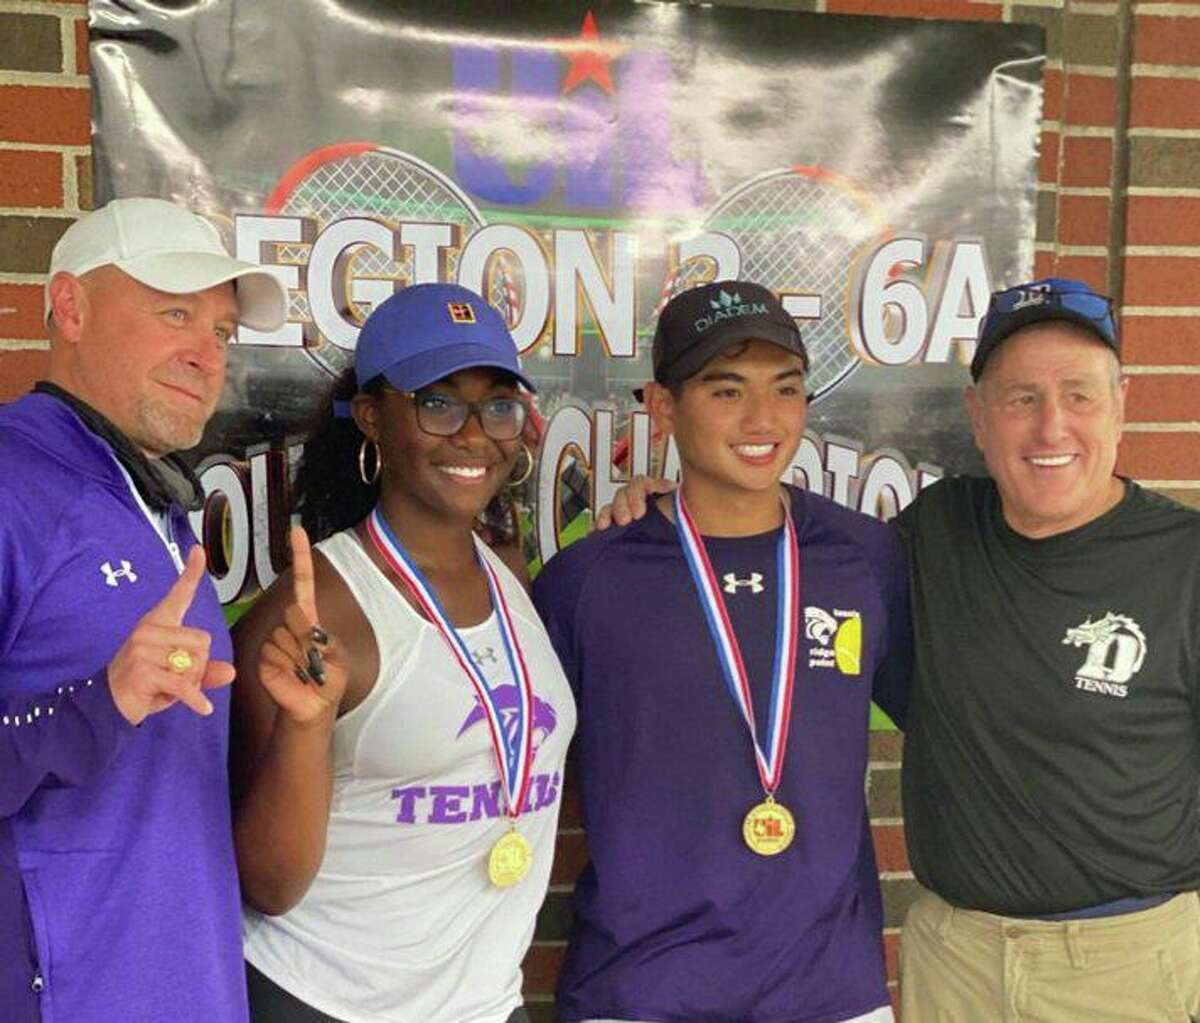 The Ridge Point mixed doubles team of Jada Hill and Mario Dominguez competed at the Class 6A state tournament after winning the Region III-6A championship.